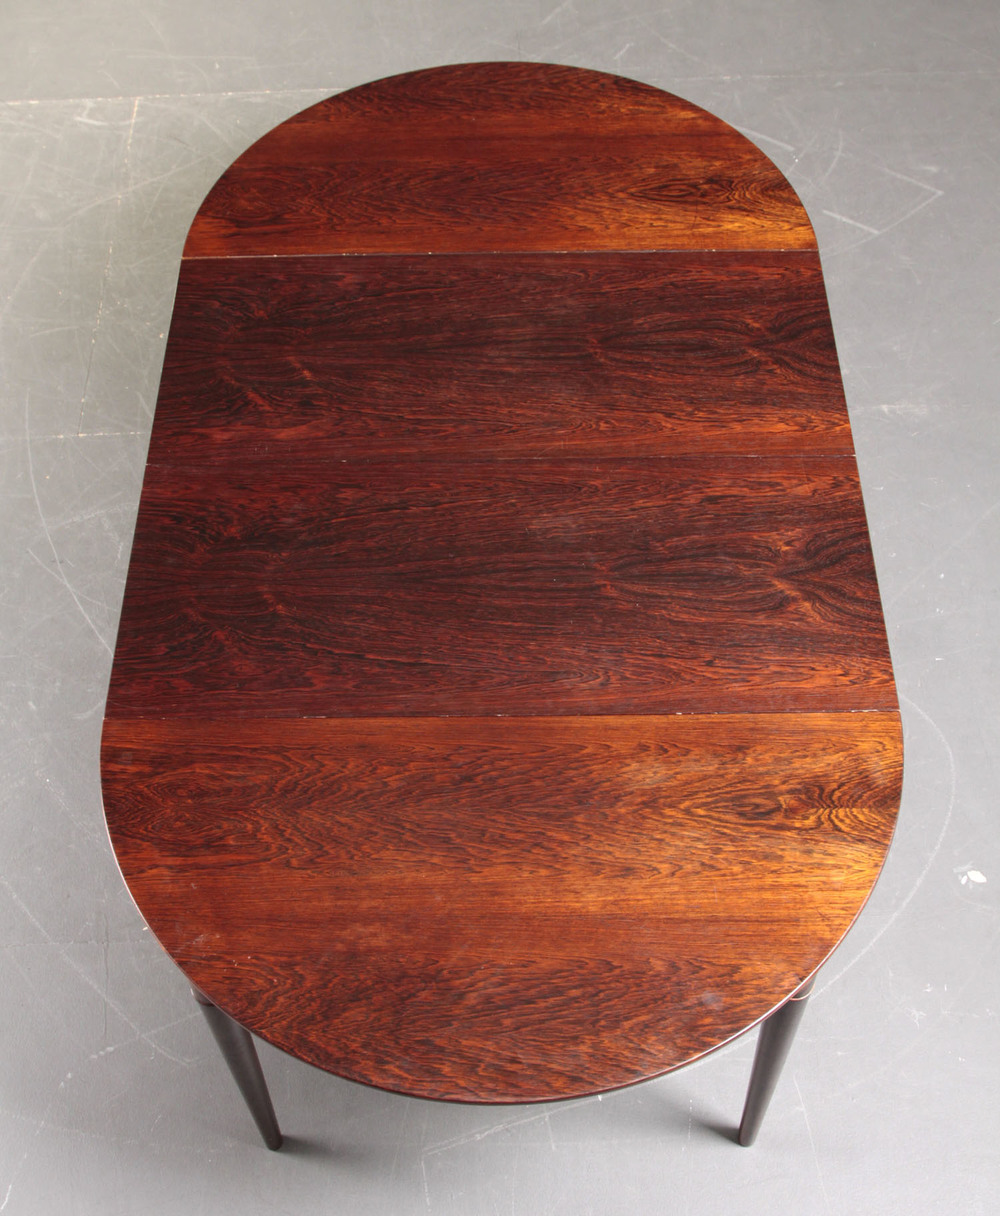 Haslev 1965 dining table2_resize.jpg